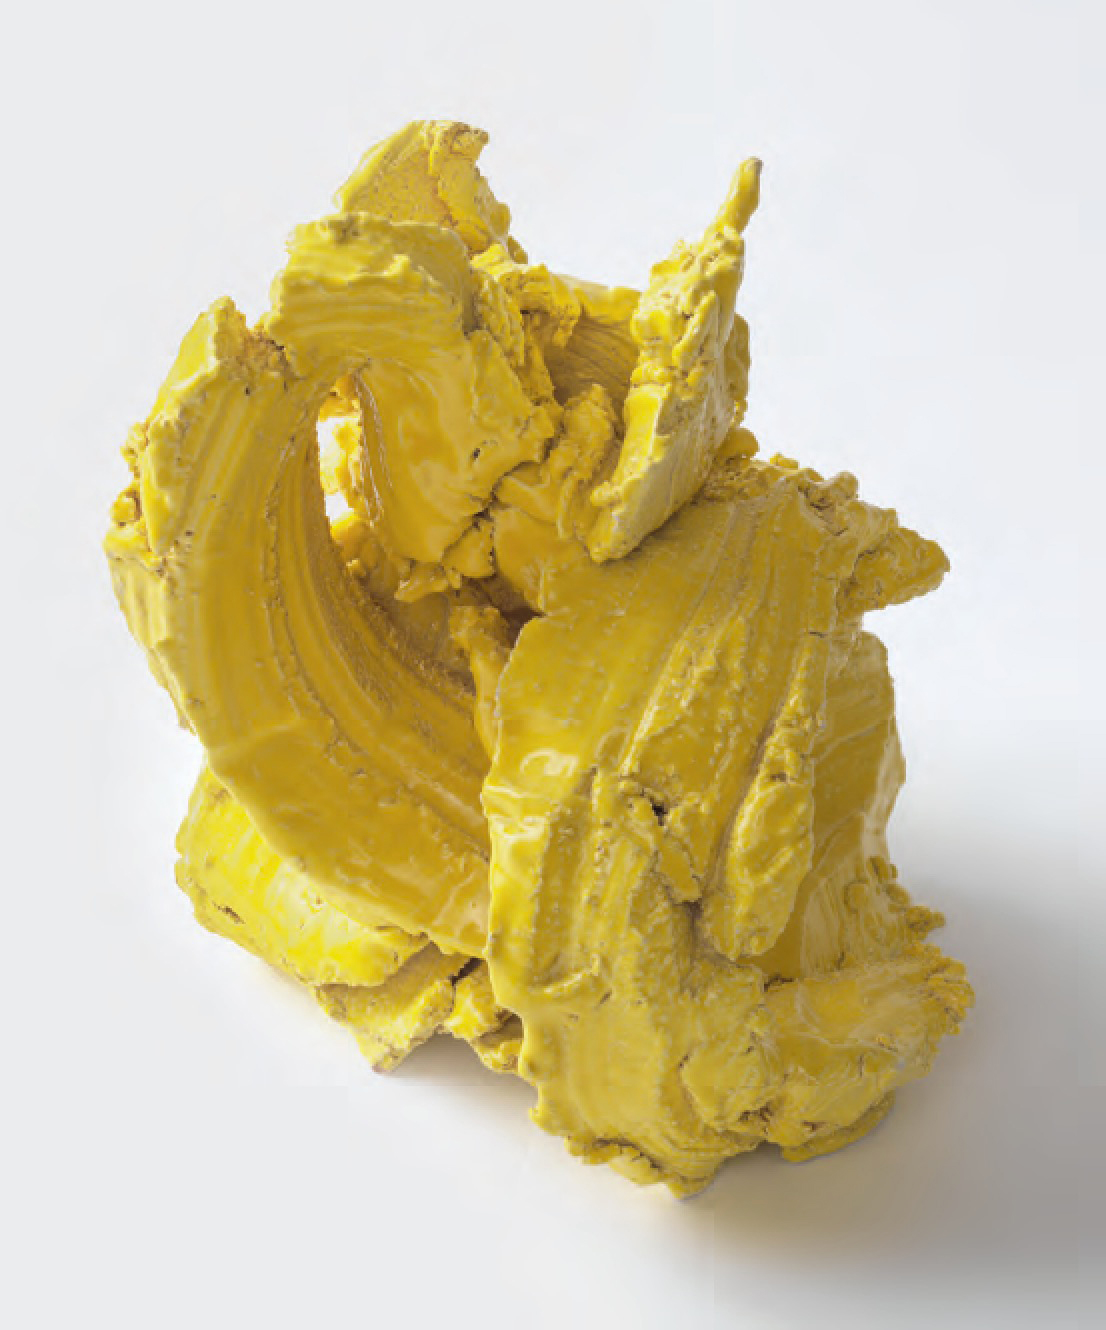 Yellow Strokes, 2015 Ceramic Ghada Amer - courtesy the artist and Cheim & Read